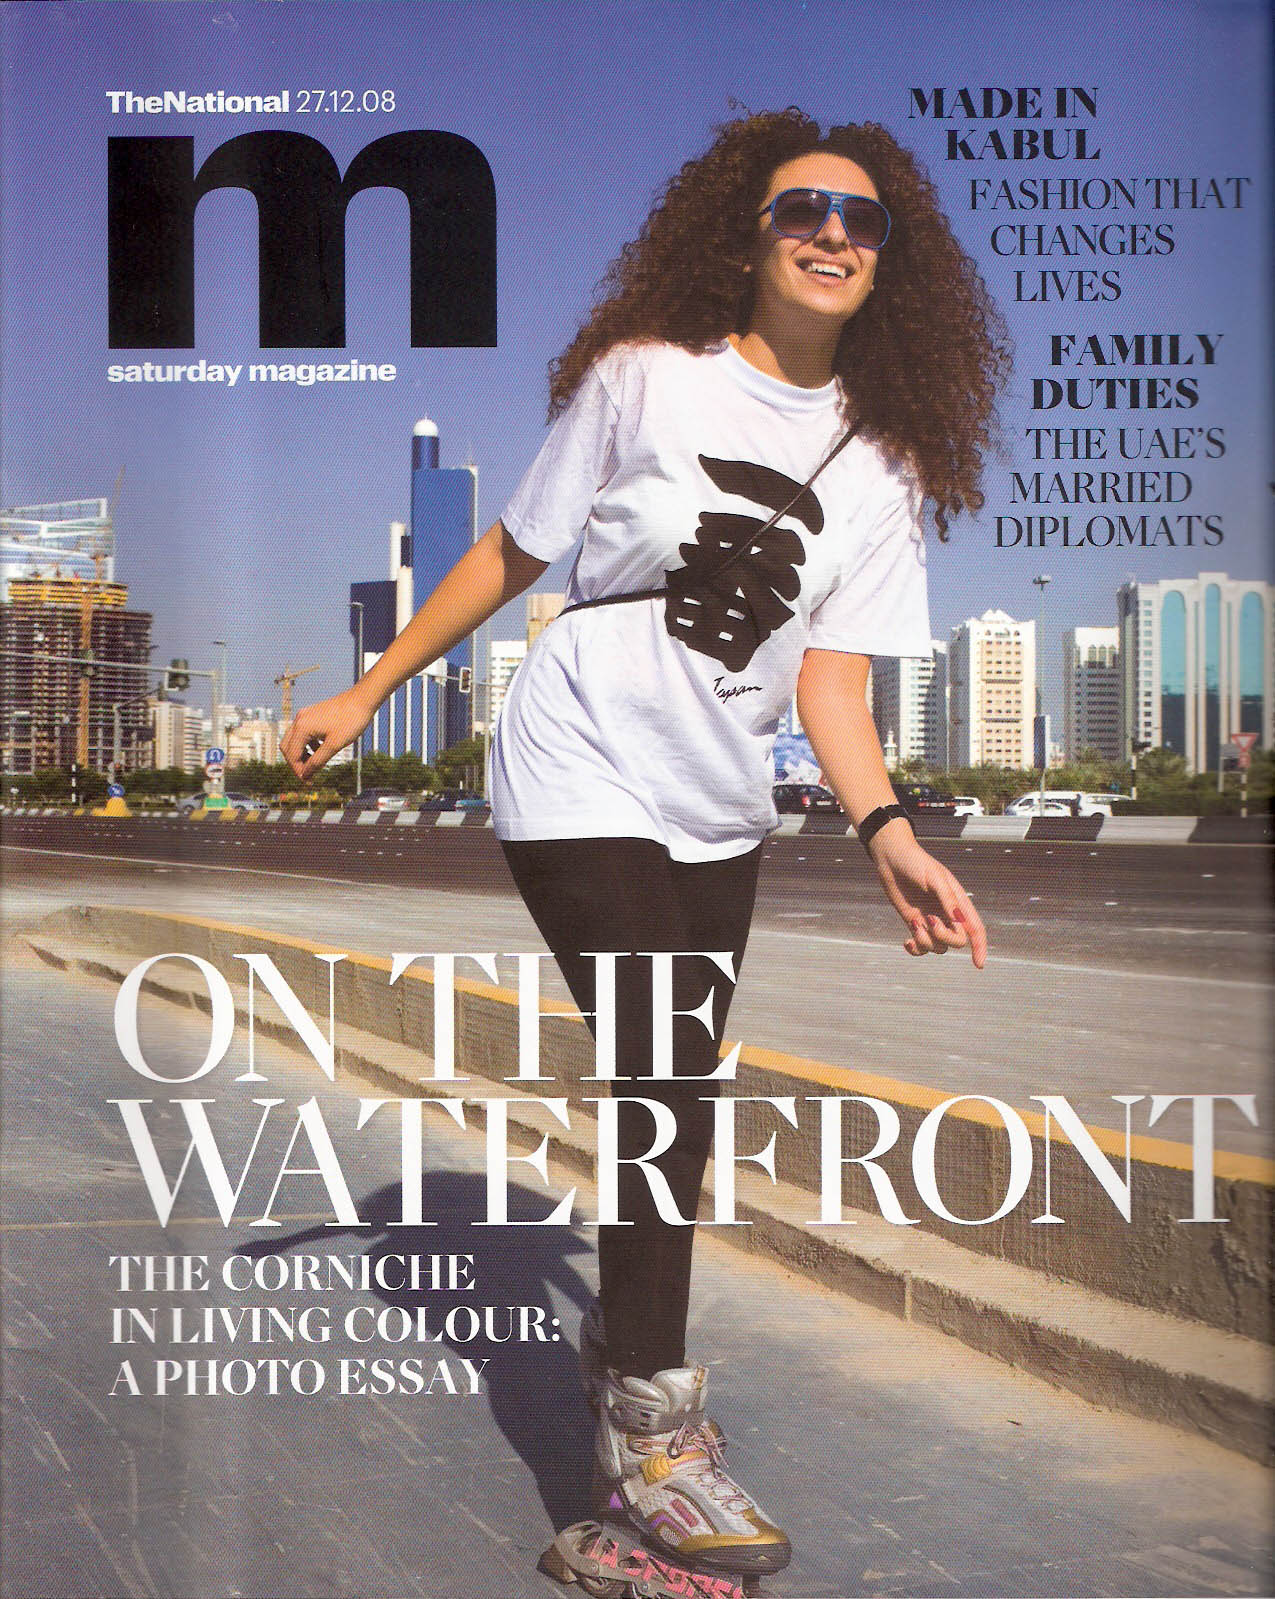 TheNationalMagazine_cover.jpg